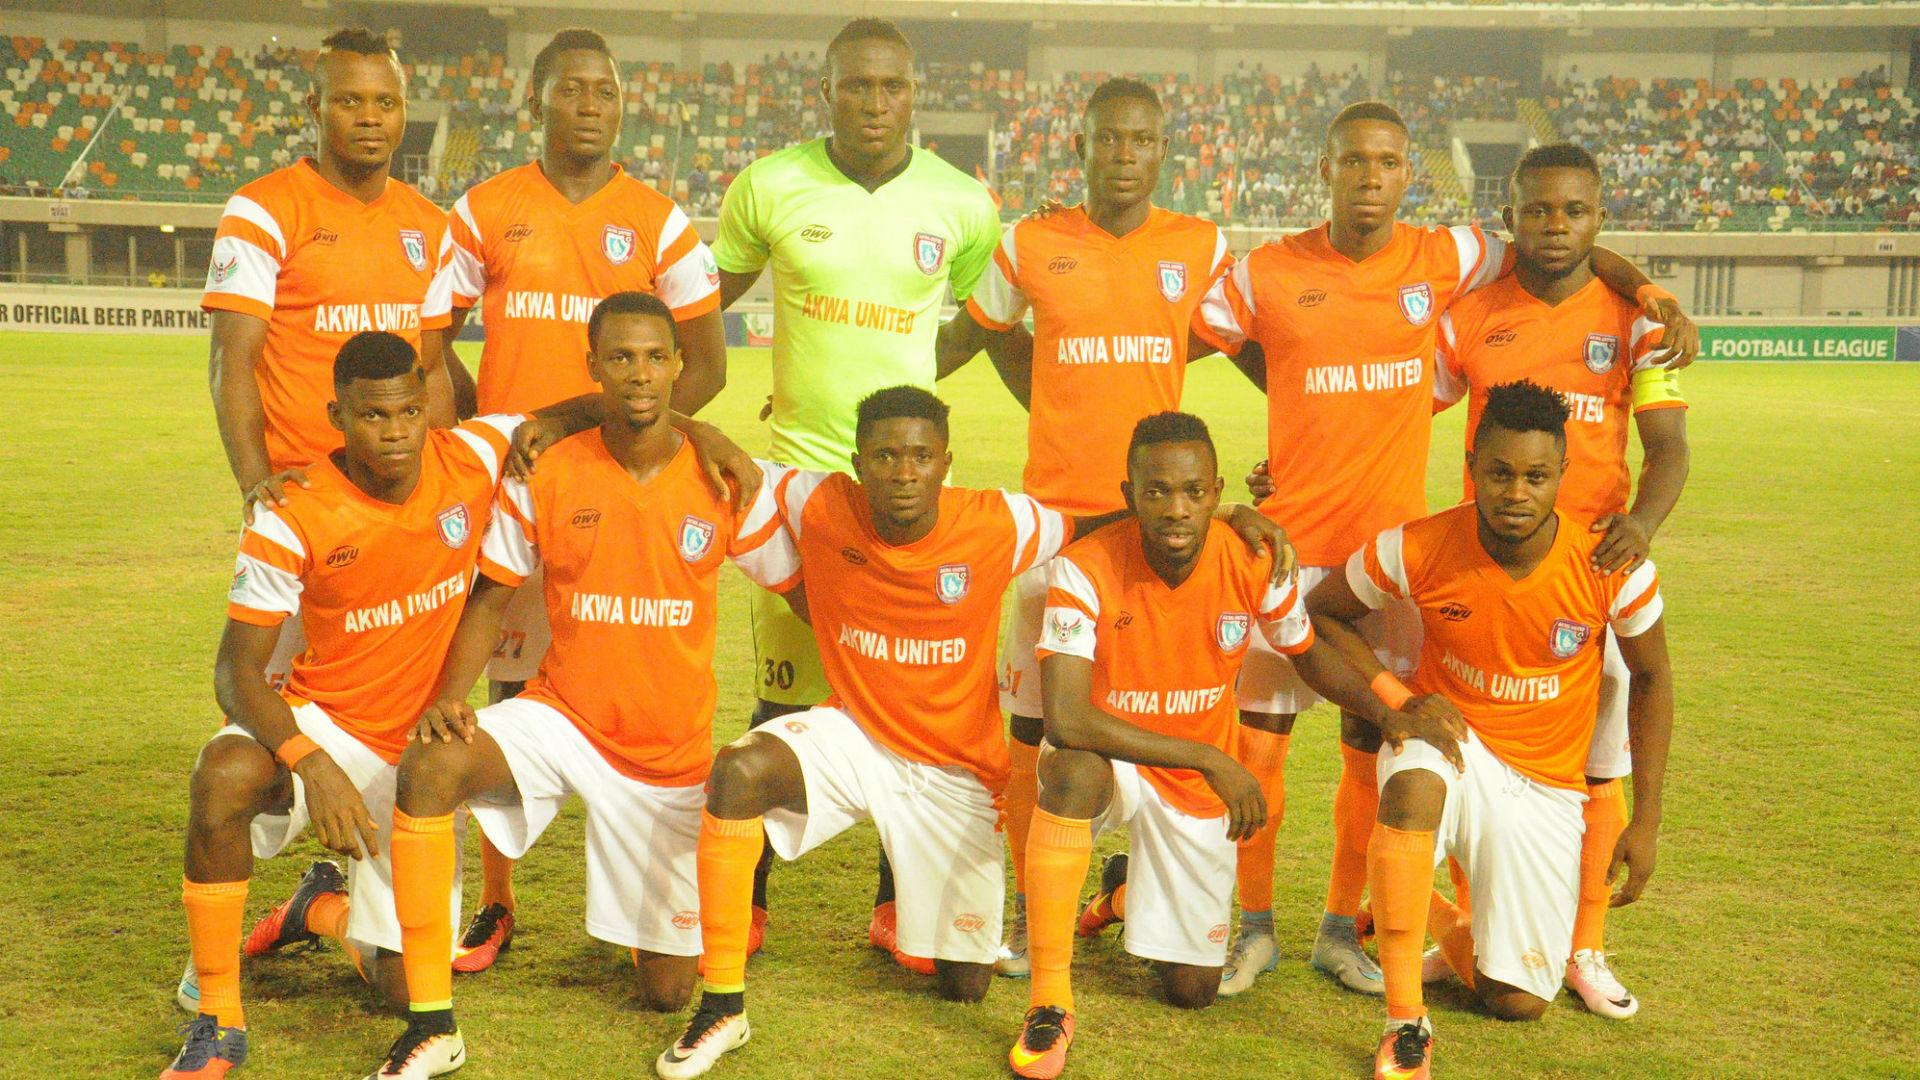 'Welcome to the continent' –Twitter rejoices with Akwa United after Federation Cup triumph